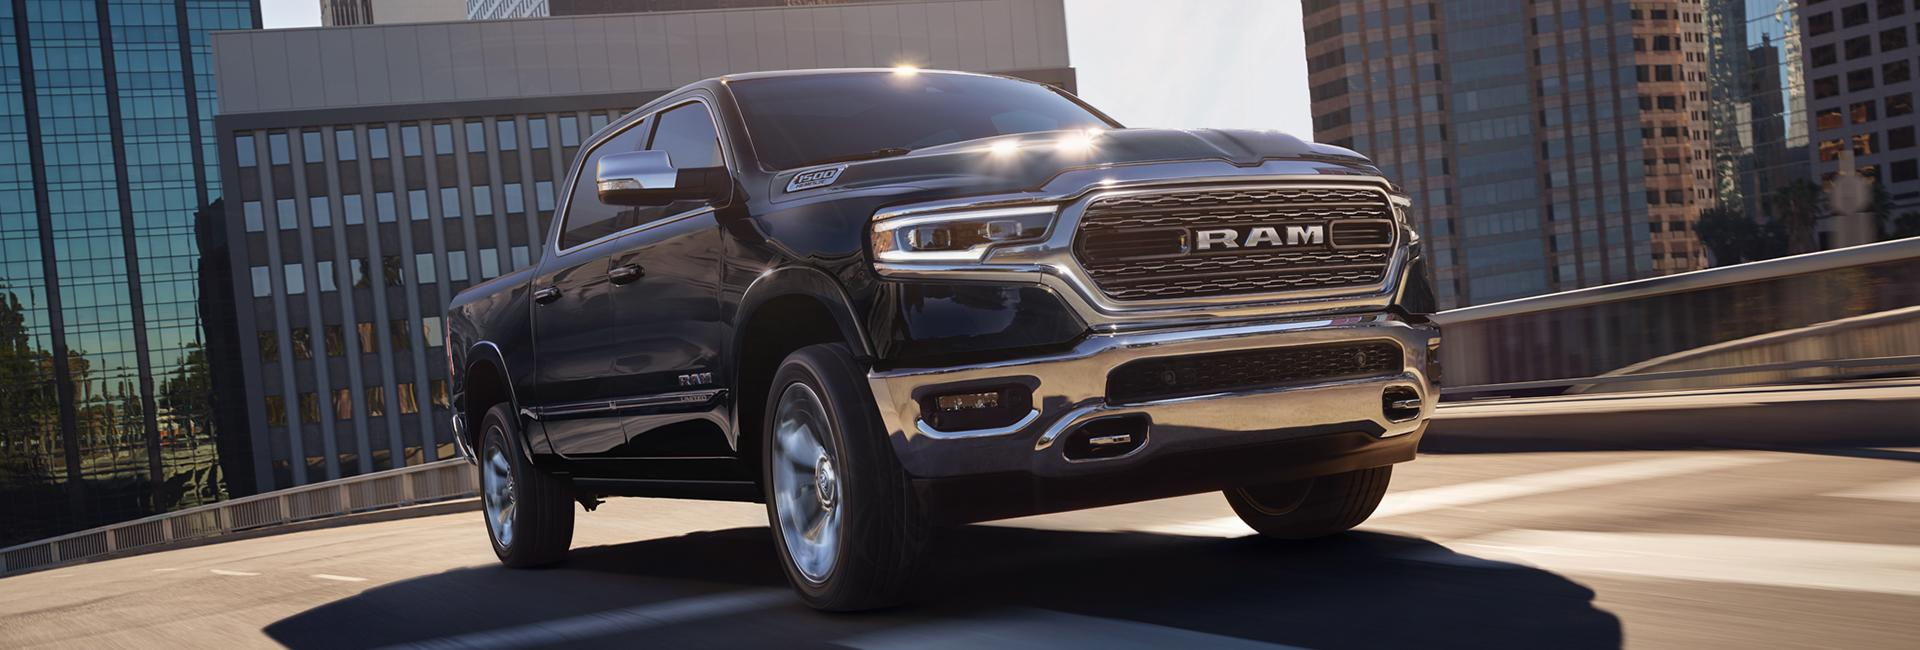 Picture of the 2020 RAM 1500 for lease at Spitzer CDJR Cleveland Ohio